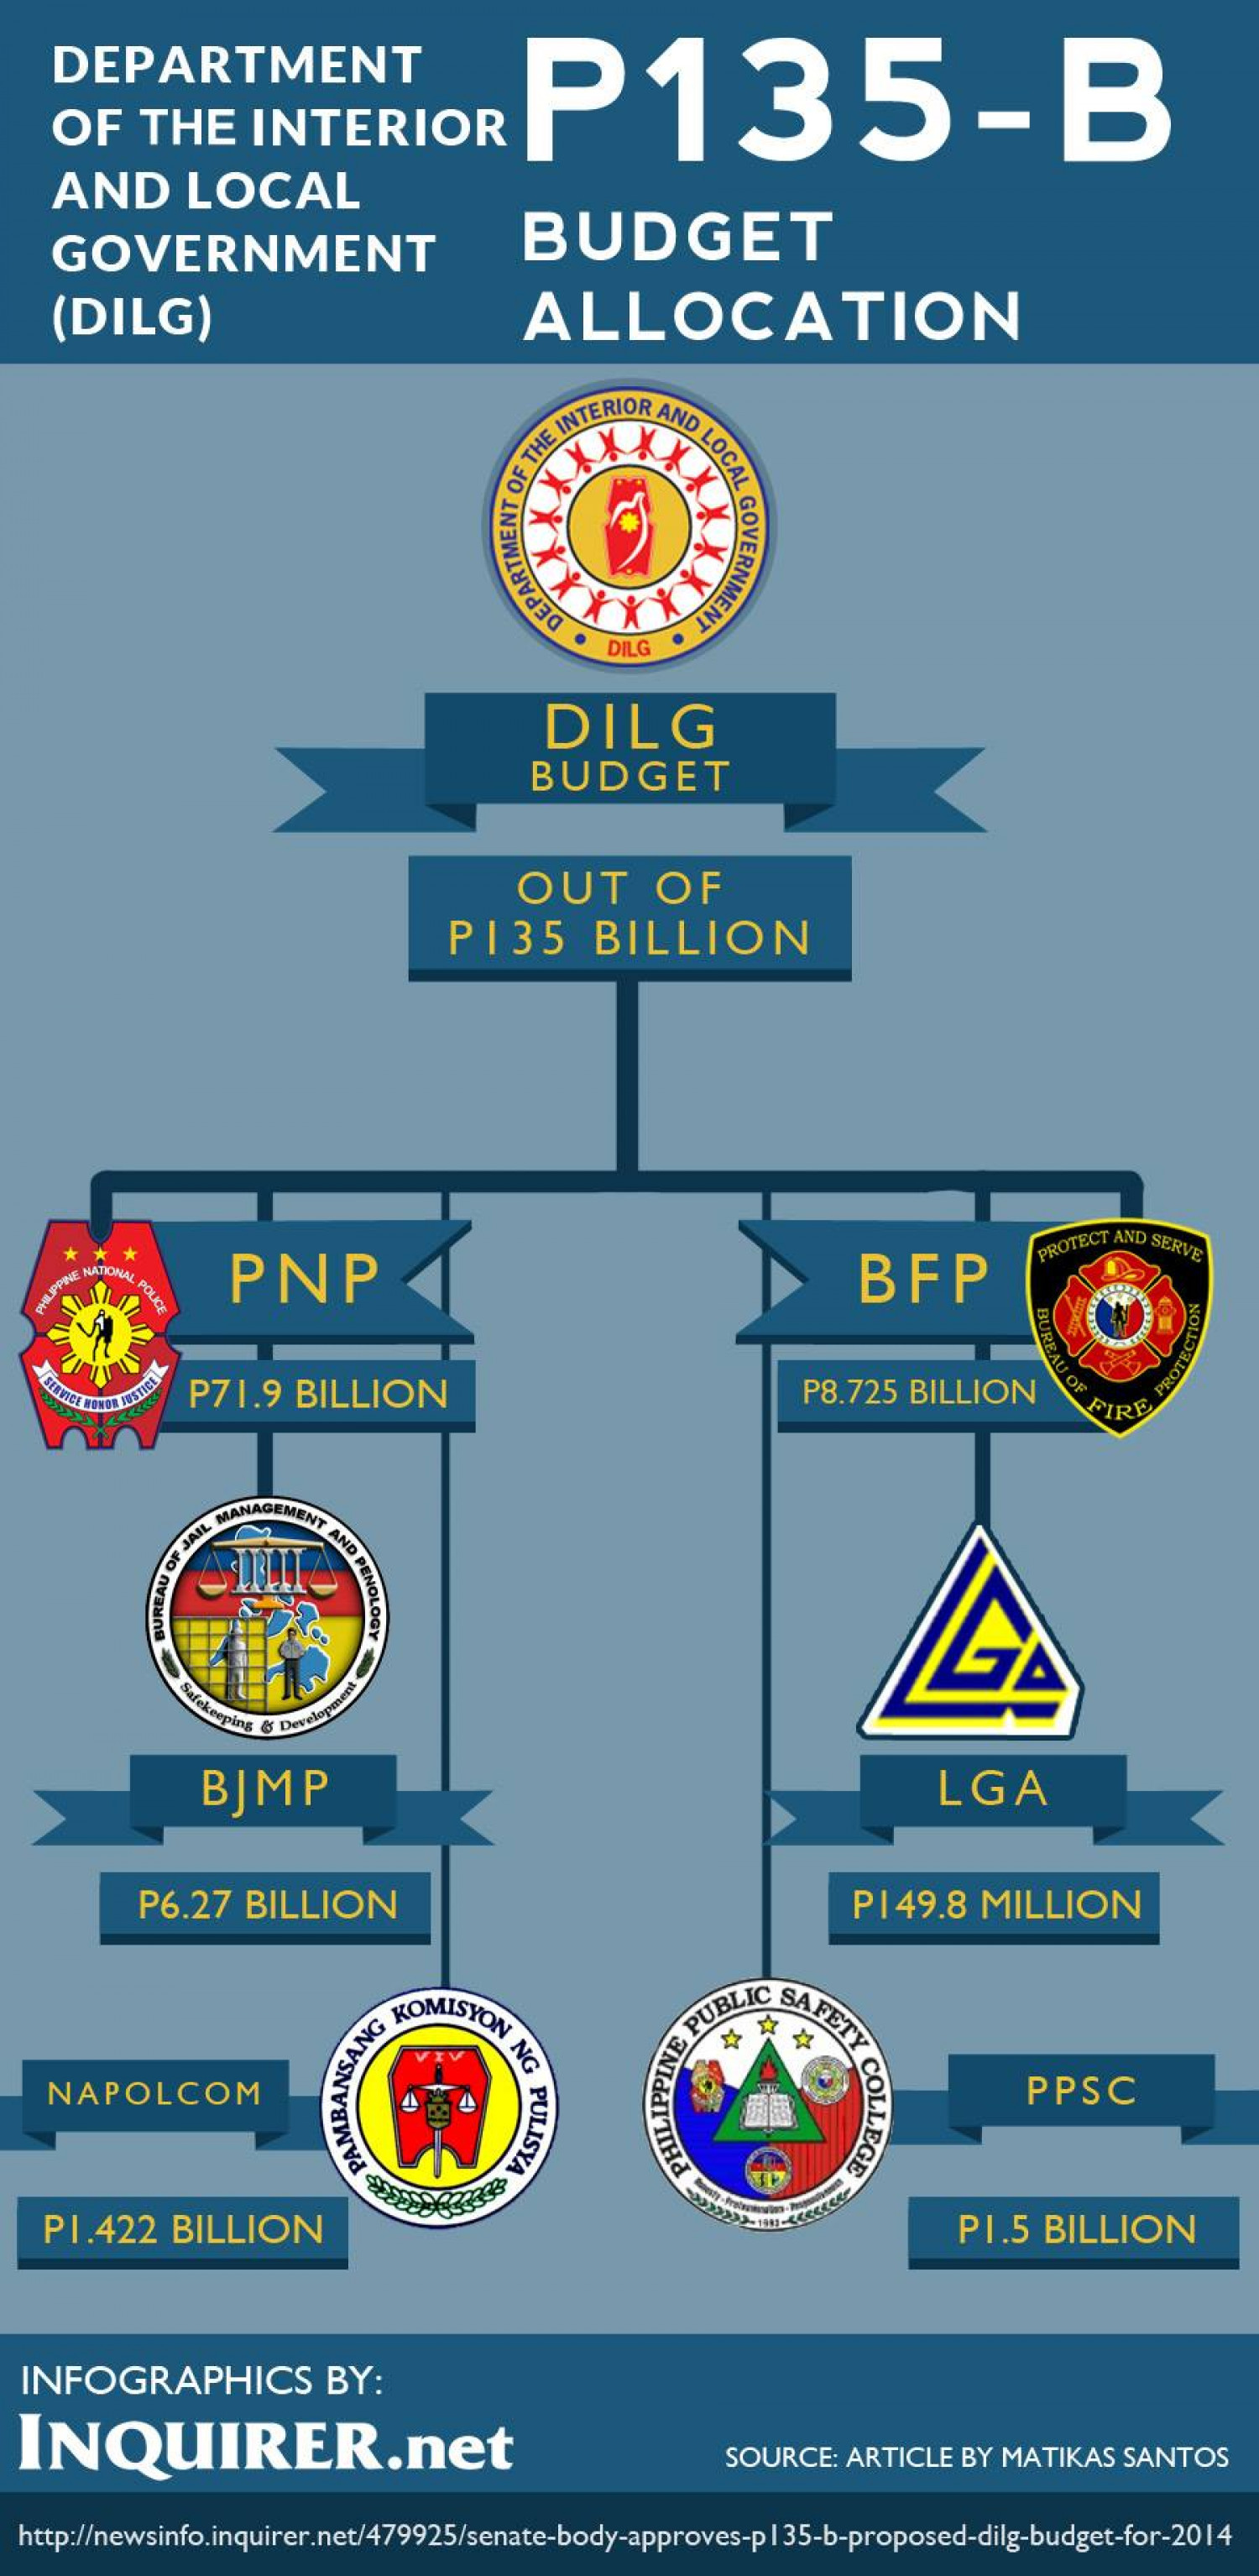 Senate body approves P135-B proposed DILG budget for 2014 Infographic